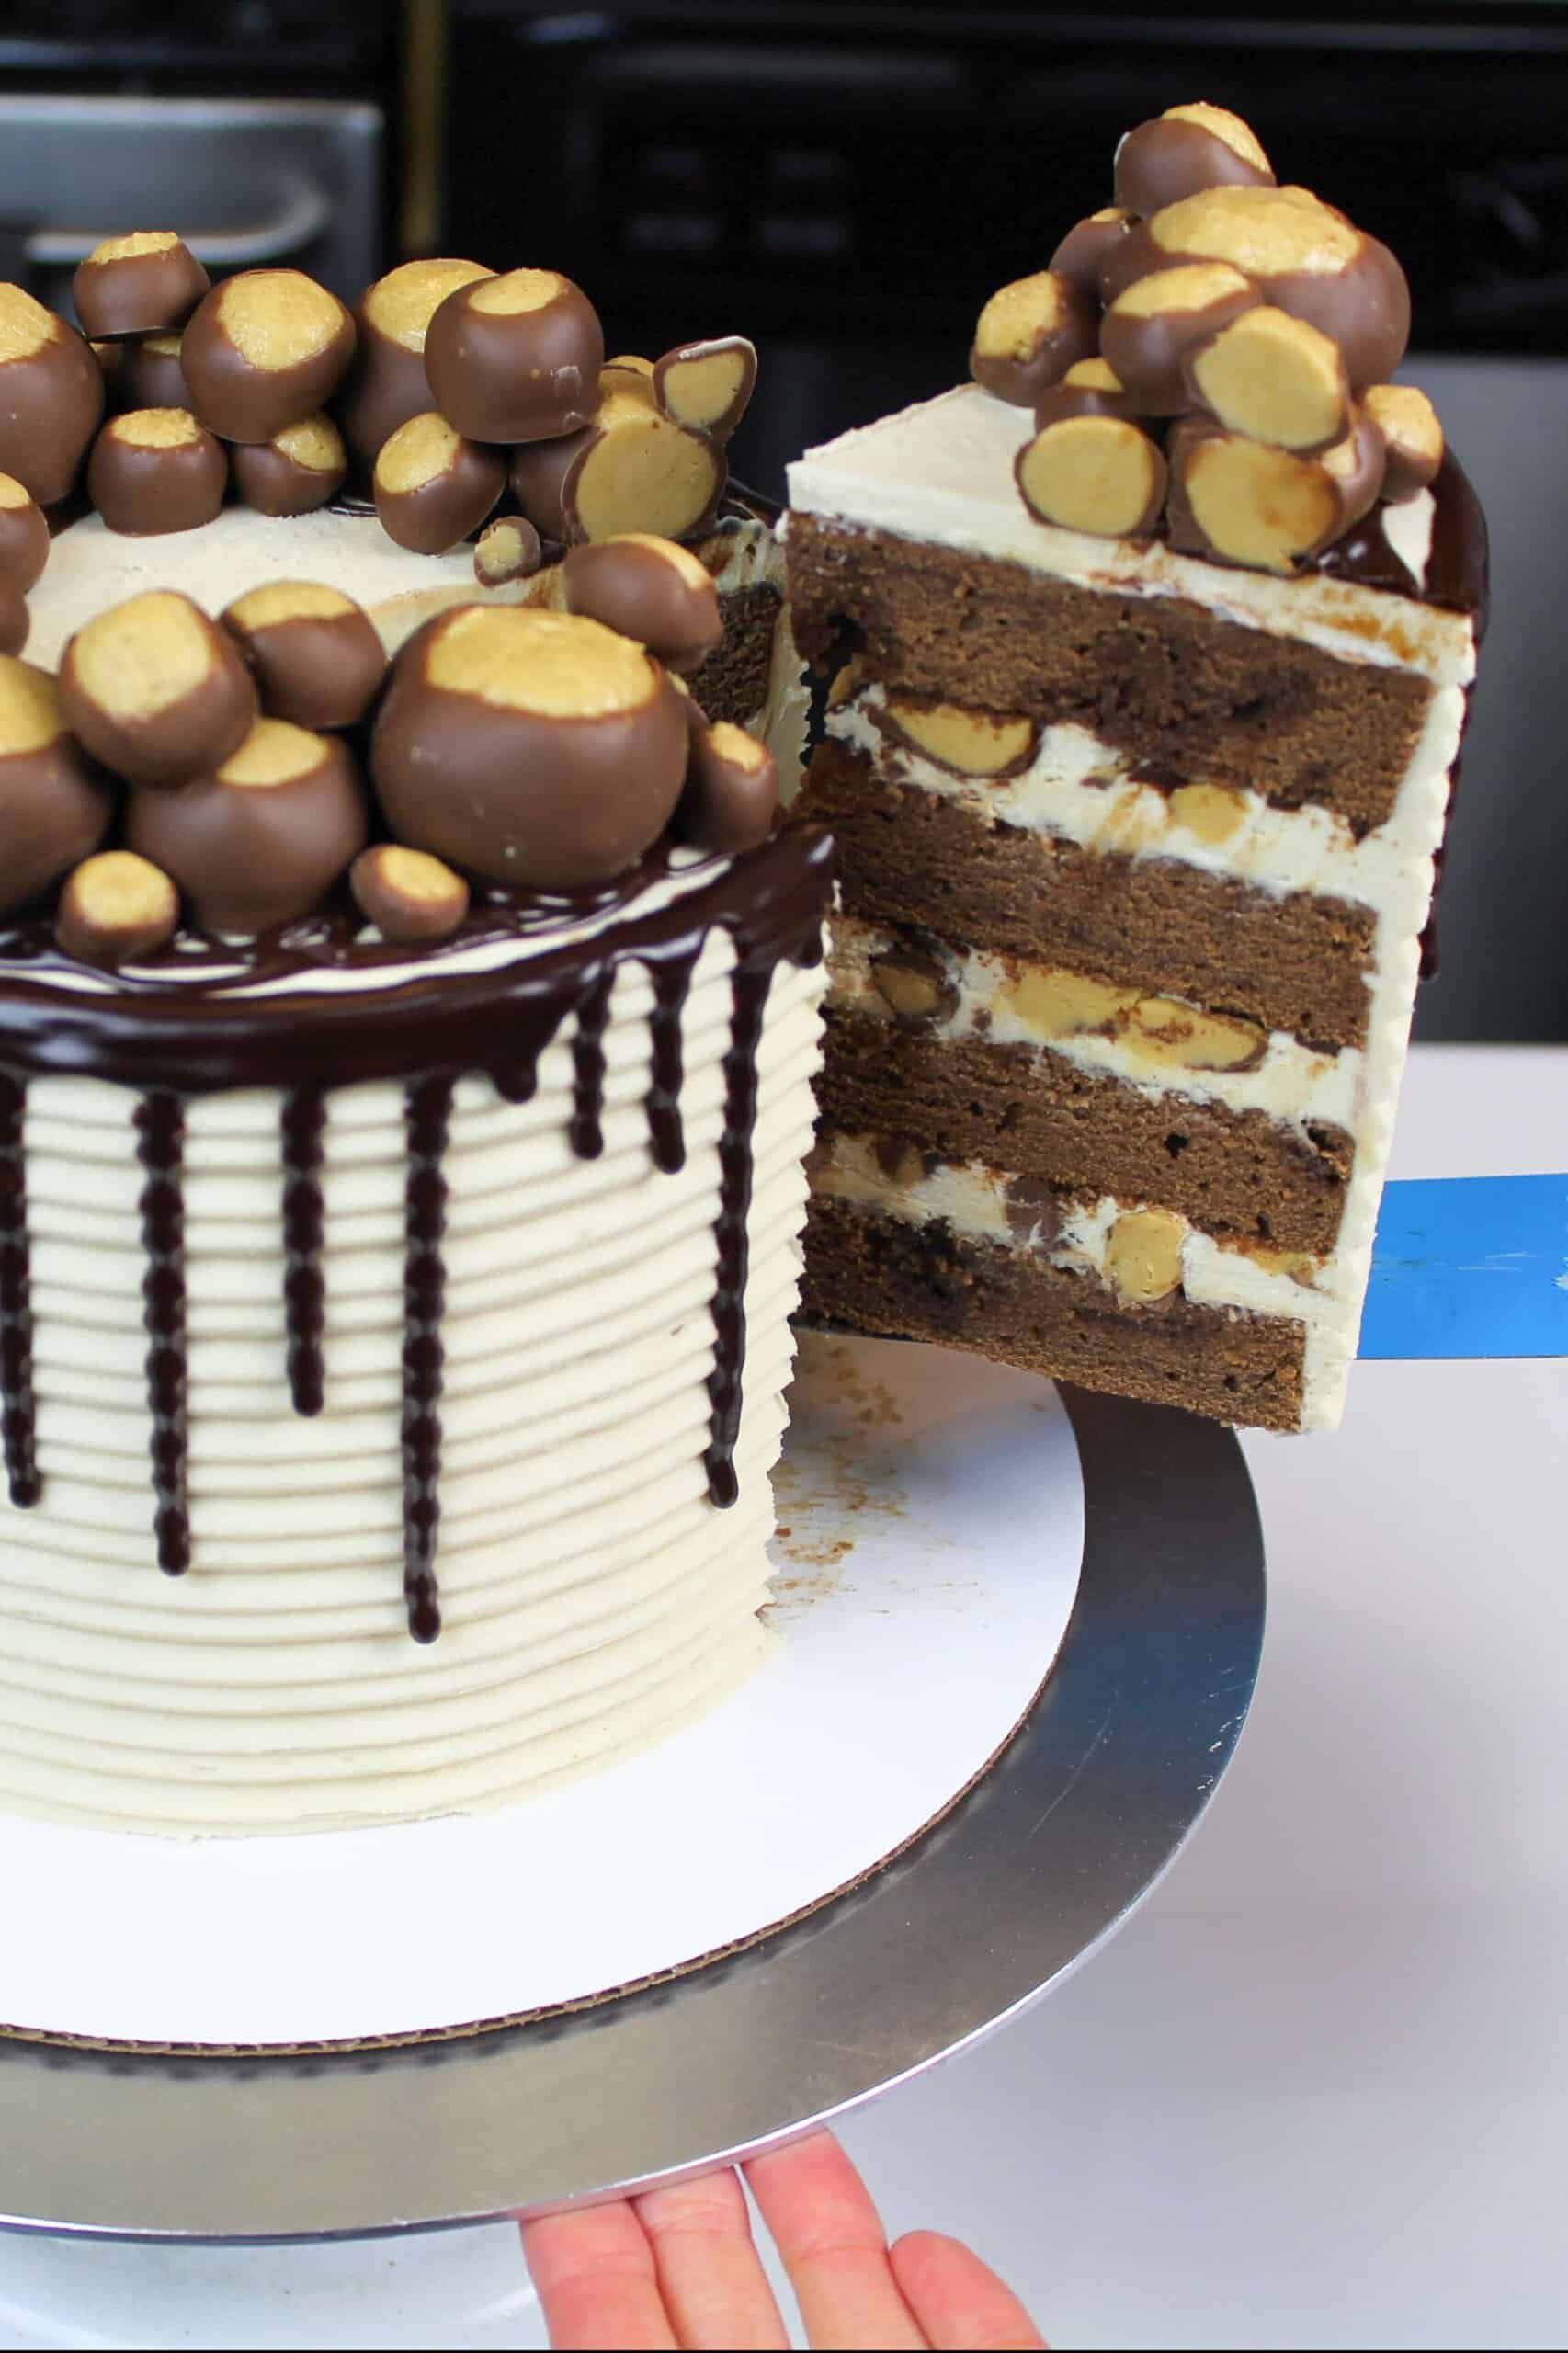 image of buckeye cake being cut into to show it's peanut butter frosting and tender chocolate cake layers